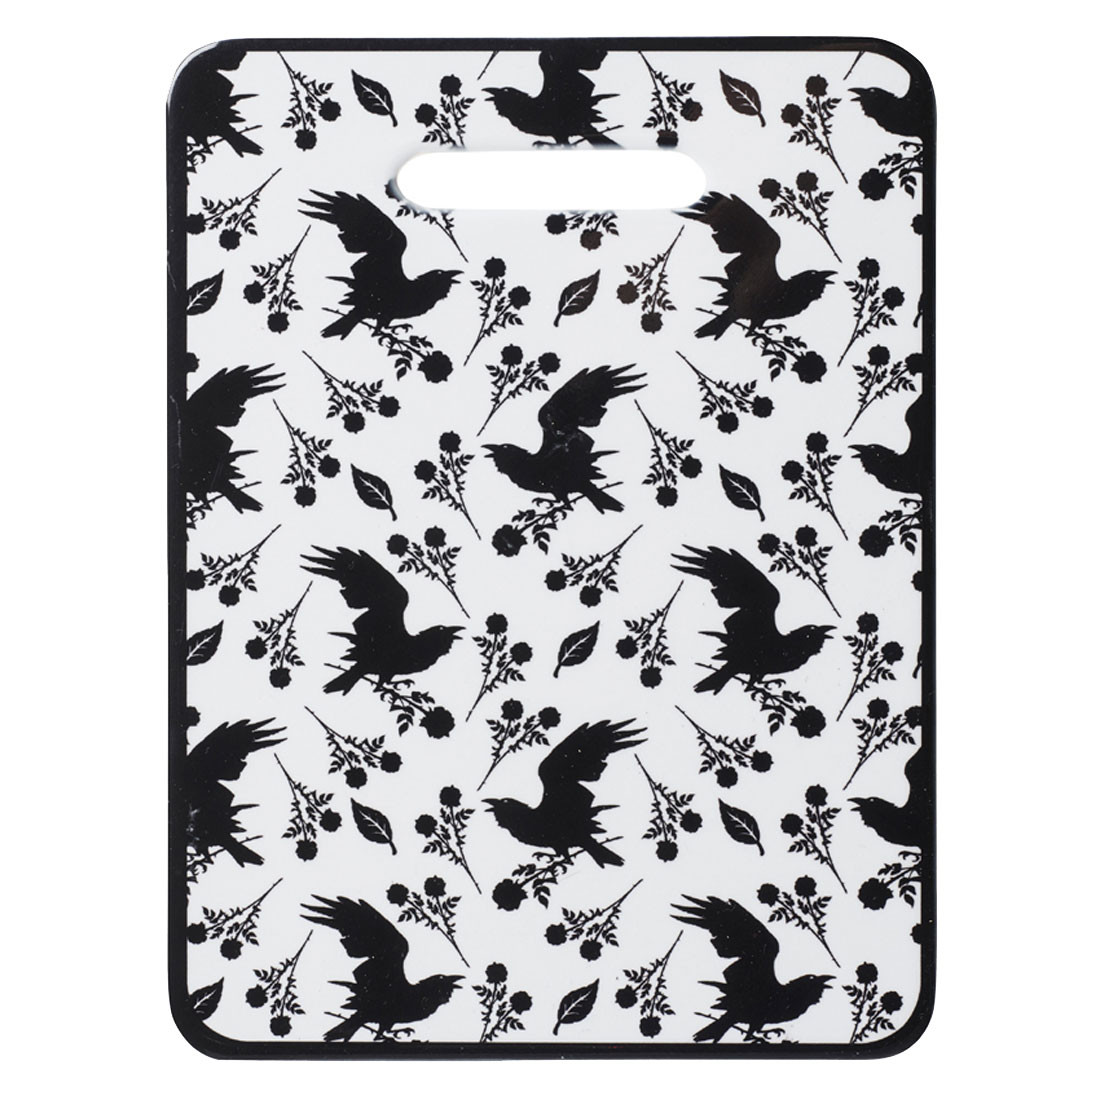 Alchemy Gothic Raven and Rose Small Cutting Board Serving Trivet Home Decor